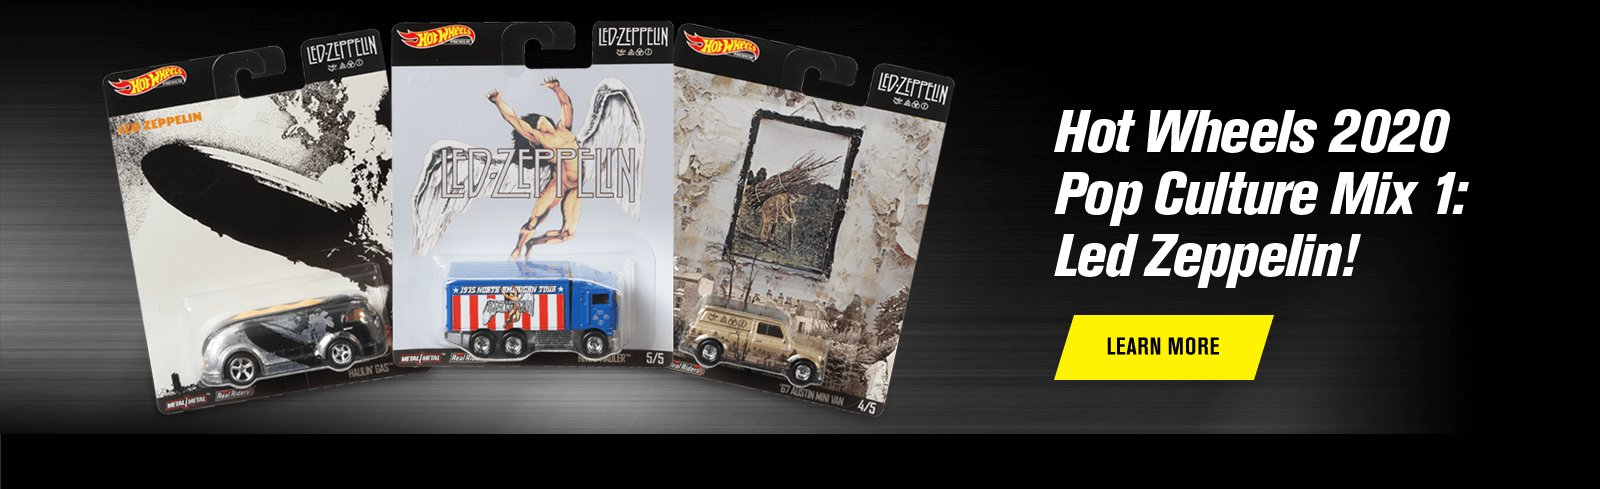 Hot Wheels 2020 Pop Culture Mix 1: Led Zeppelin!